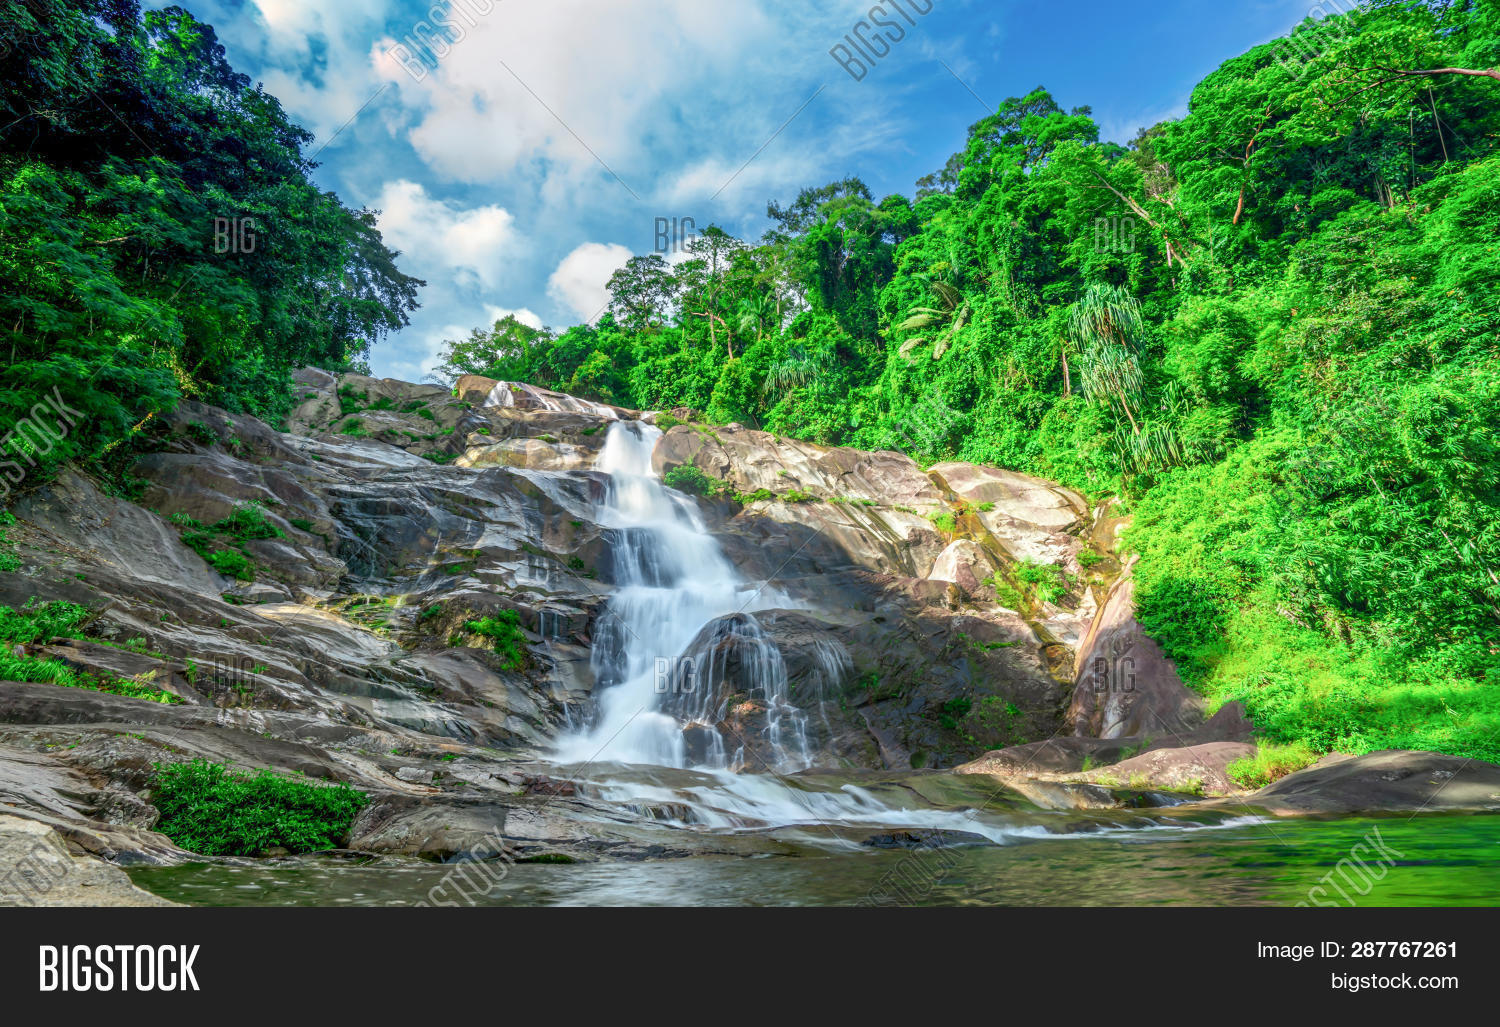 abstract,adventure,asia,background,beautiful,beauty,blue,cascade,clouds,ecotourism,environment,fall,flow,flowing,forest,granite,green,hiking,jungle,karome,landscape,light,lush,mountain,natural,nature,outdoor,park,rainforest,river,rock,scenery,scenic,sky,spring,stone,stream,summer,sun,thailand,tourism,trail,travel,tree,tropical,water,waterfall,white,wild,woods